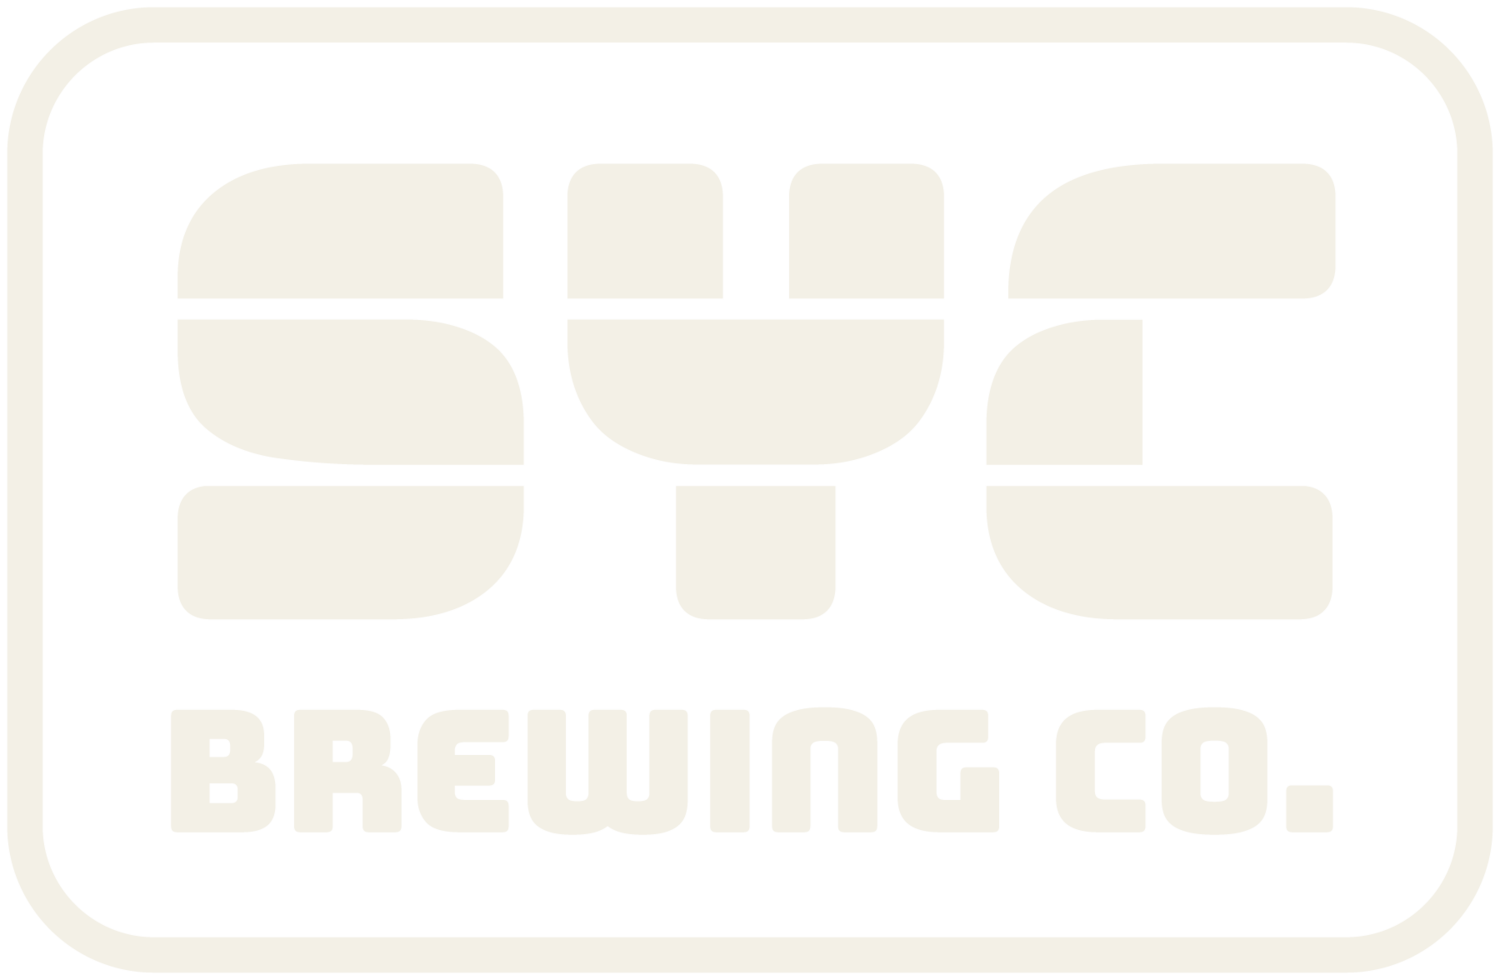 S.Y.C BREWING CO.